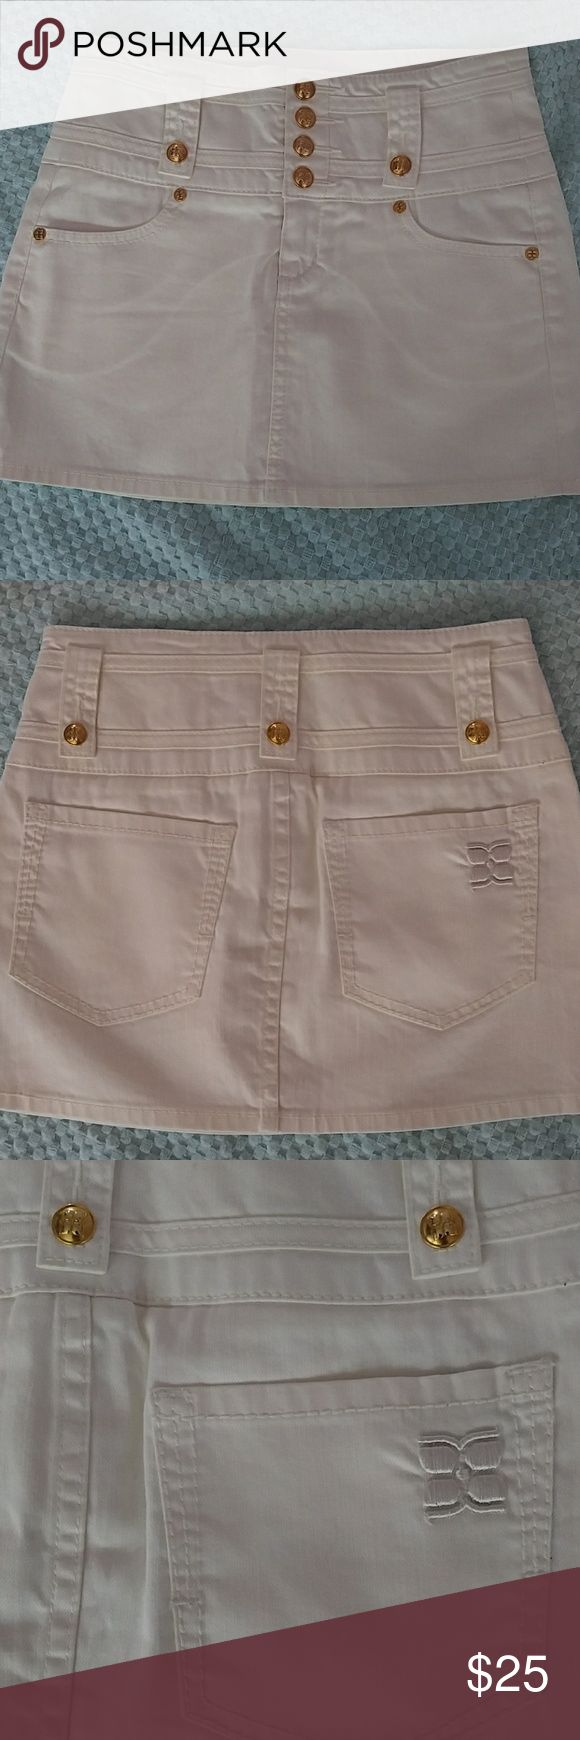 NWOT/ BCBG MAXAZRIA skirt New without tags, never worn, color white denim material, size 25, 98% cotton 2% lycra, gold tone buttons and a front zipper, pockets front and back. In excellent condition. Unfortunately, does not fit. Love the details on buttons.  No trades BCBGMaxAzria Skirts Mini